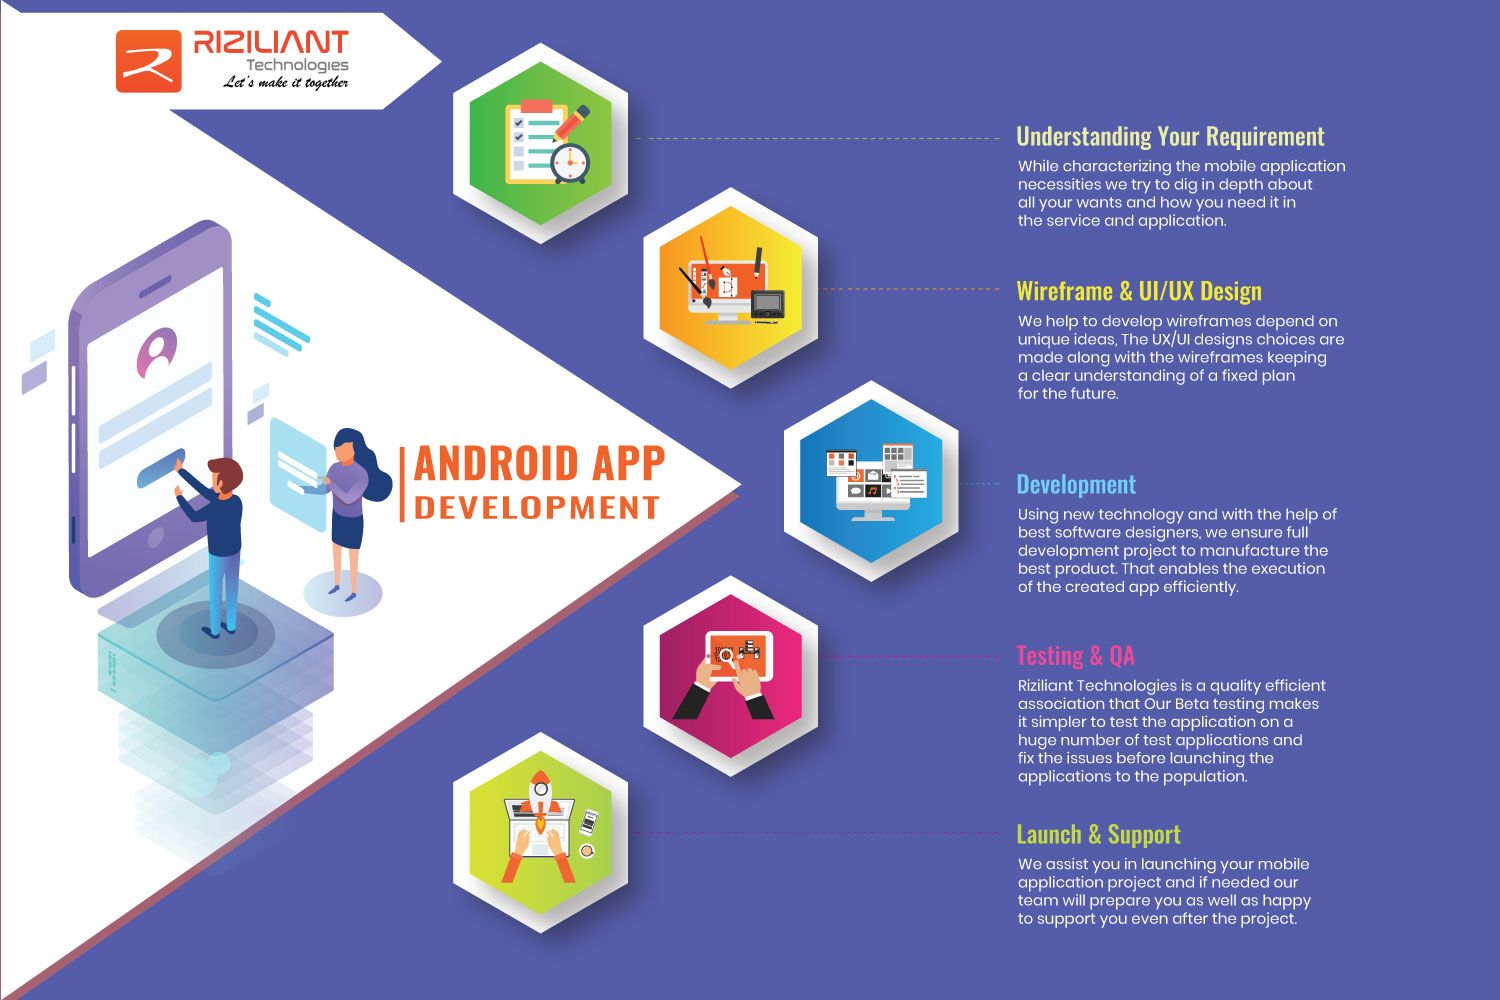 Pin by Riziliant Technologies on Android App Development